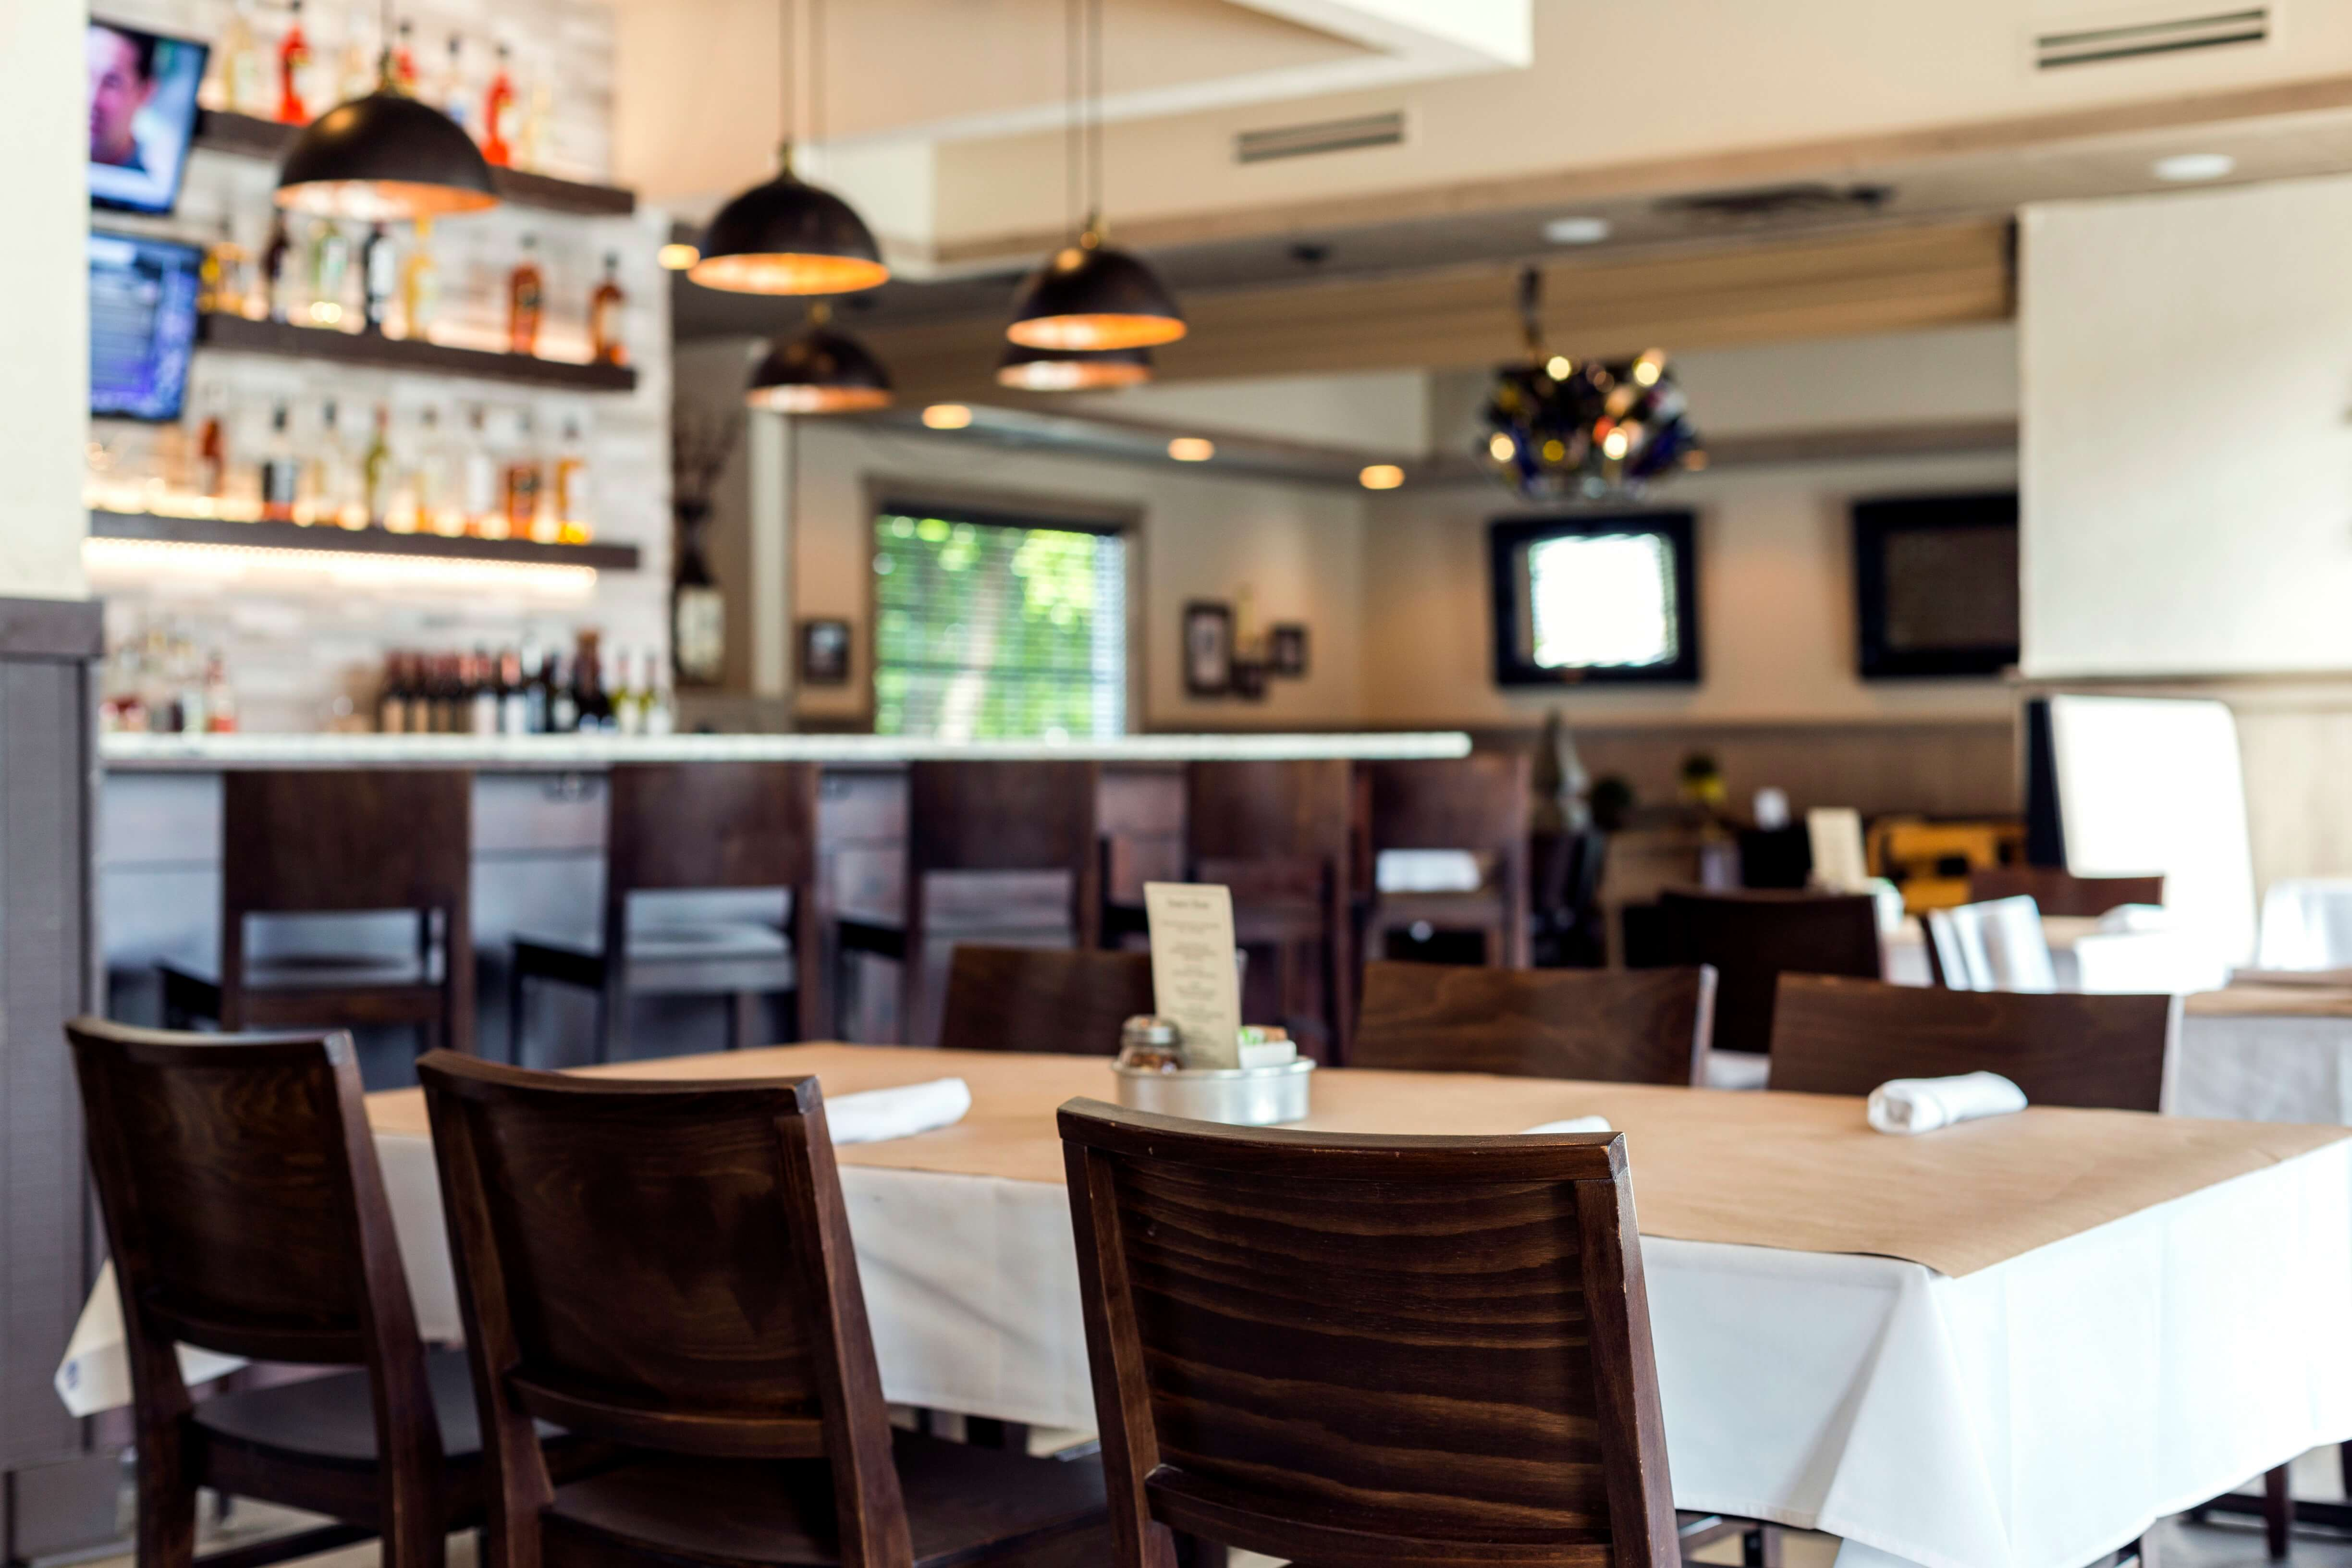 Local Restaurants Near Me: Lucia's Italian Restaurant Coupons Near Me In Roswell